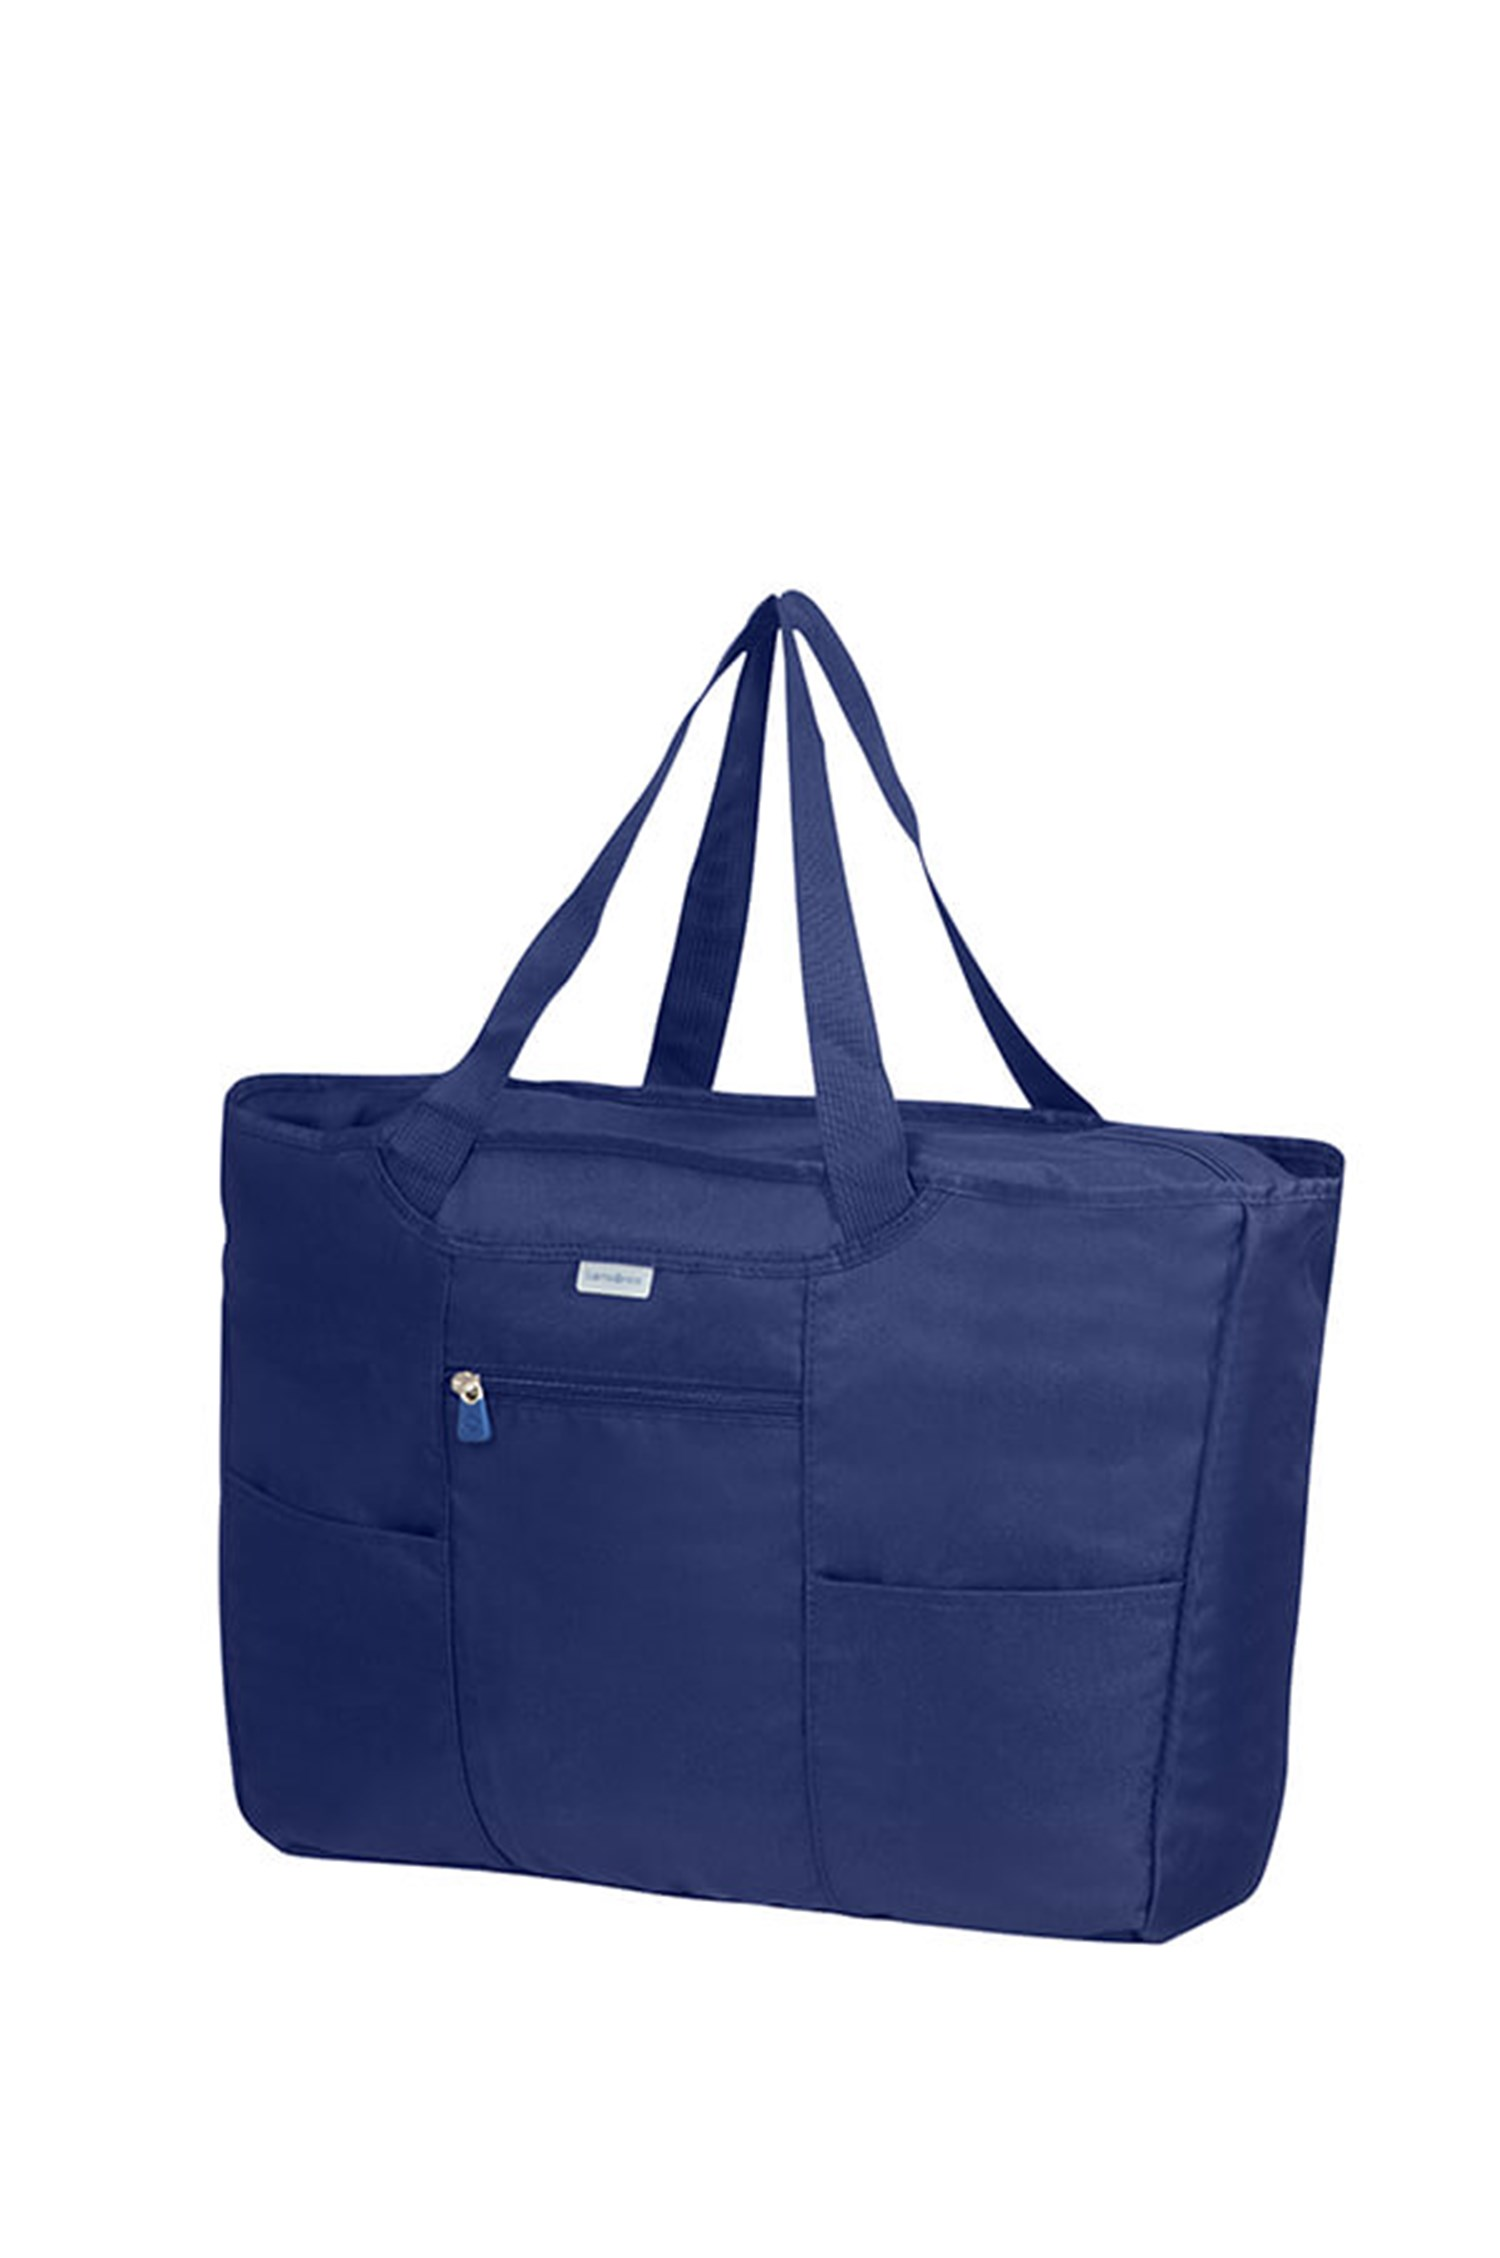 Samsonite Bags suitcases Shopping BLUE CO1011036